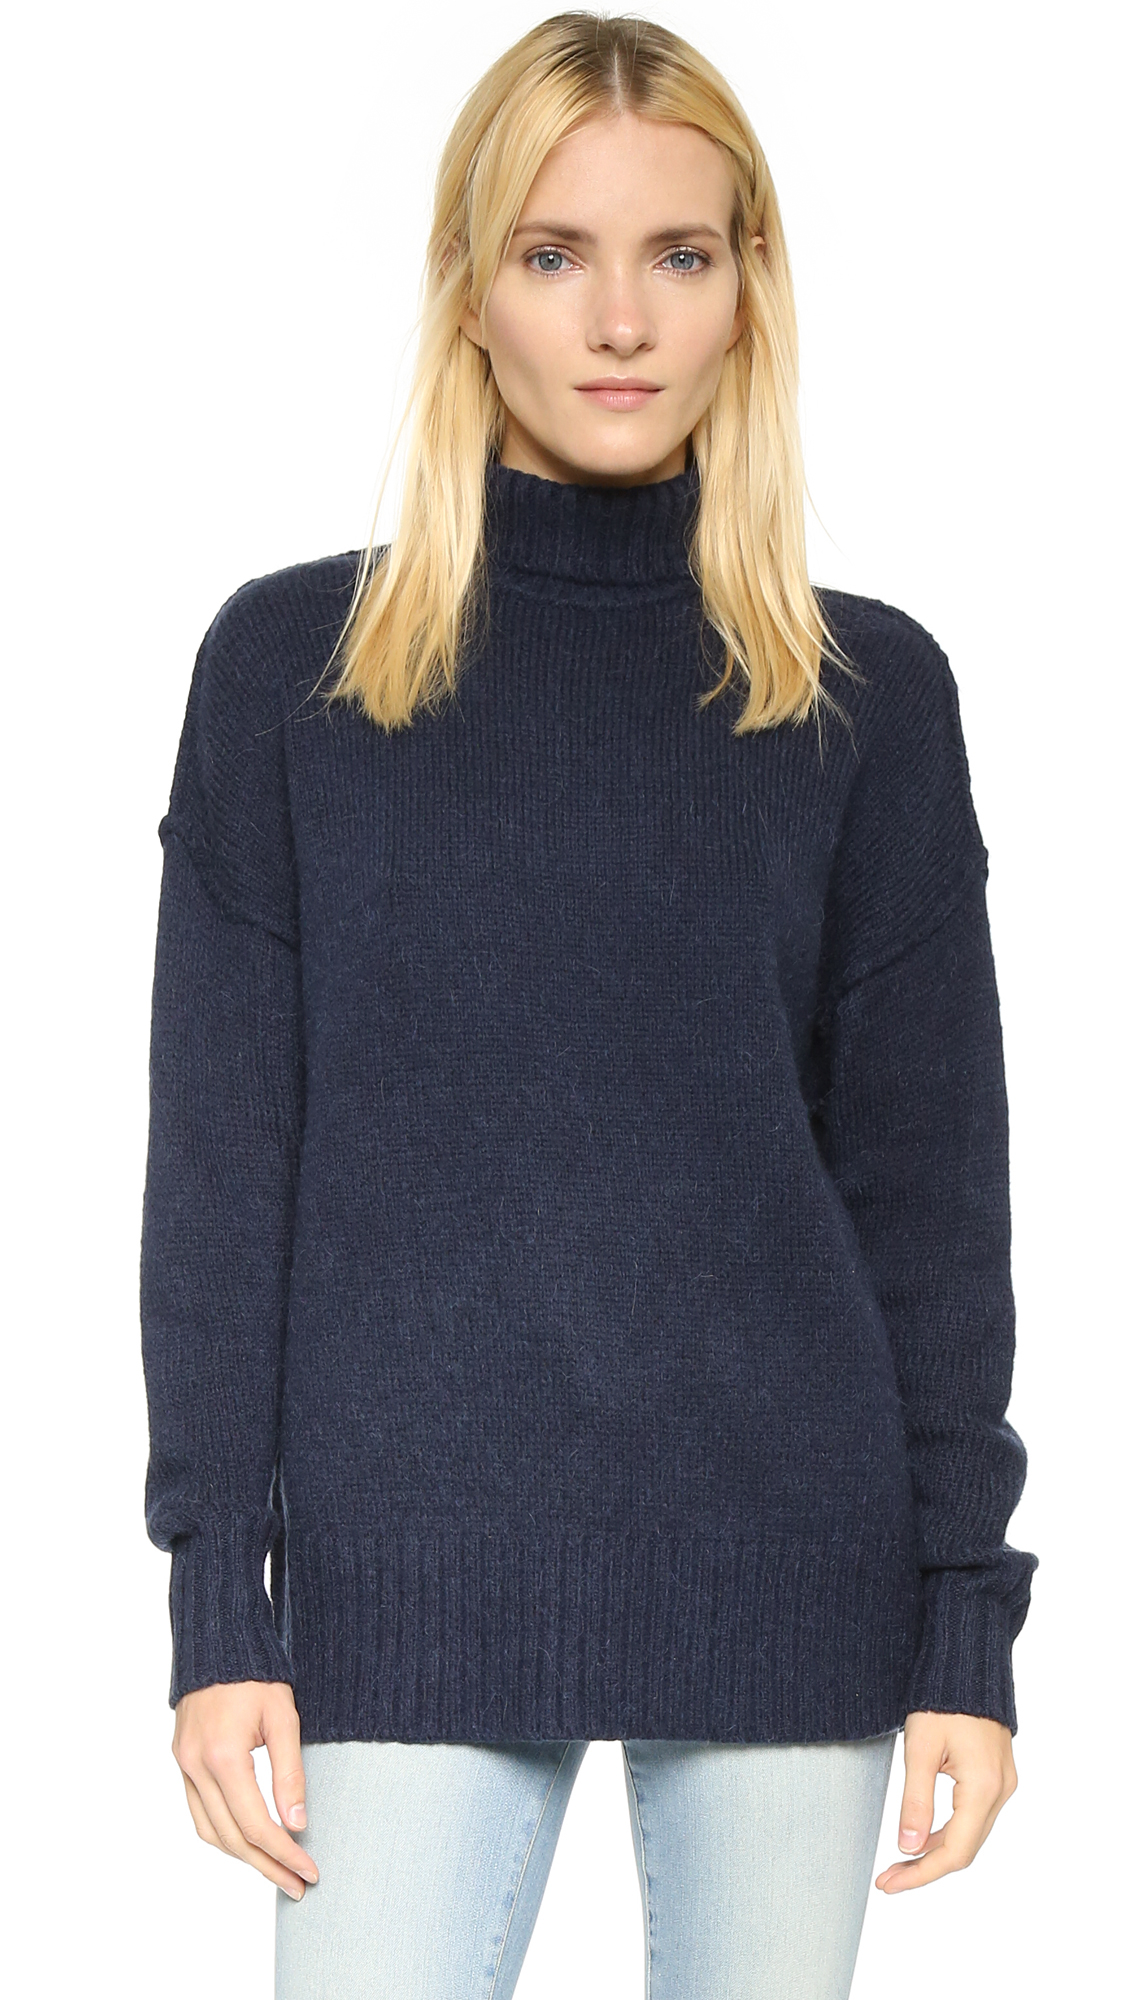 Nlst Oversized Turtleneck Sweater - Navy in Blue | Lyst